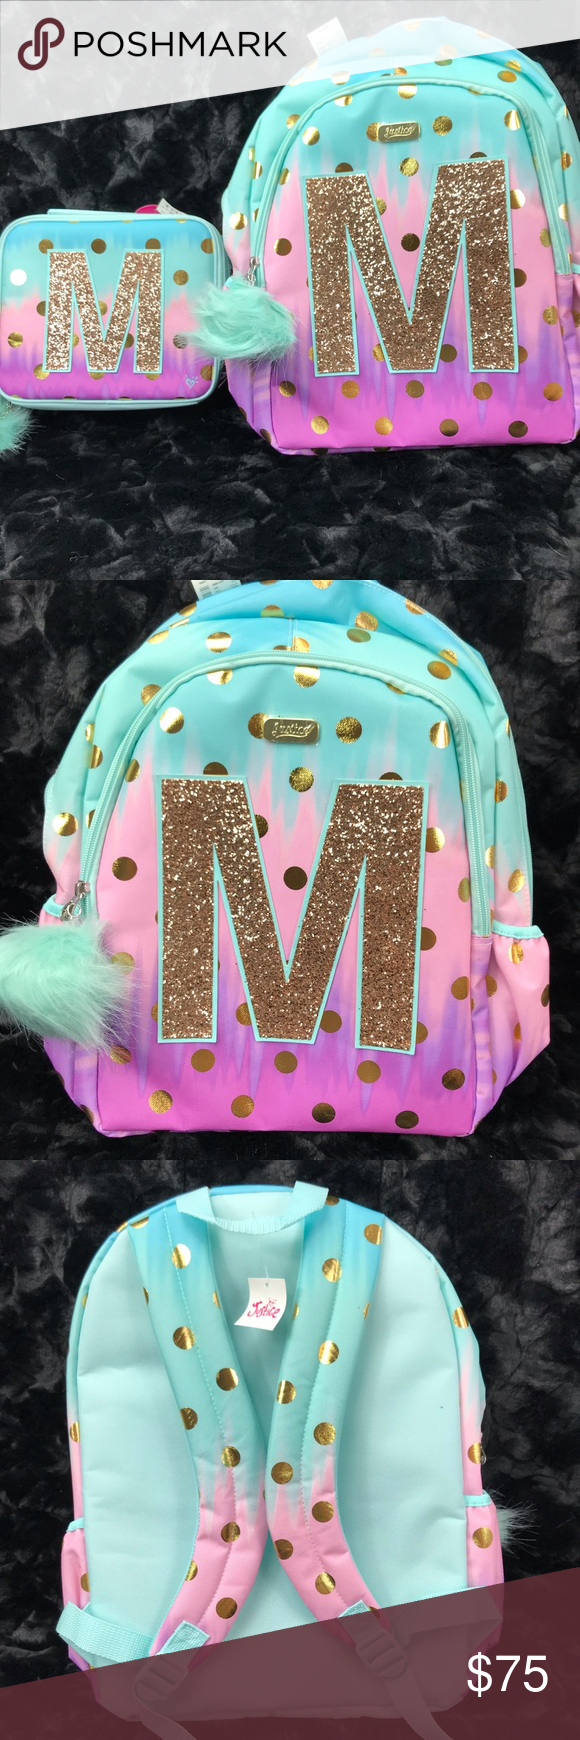 Justice Backpack Ombre Gold Foil Set Initial M New Justice Backpacks Justice Accessories Bag Accessories